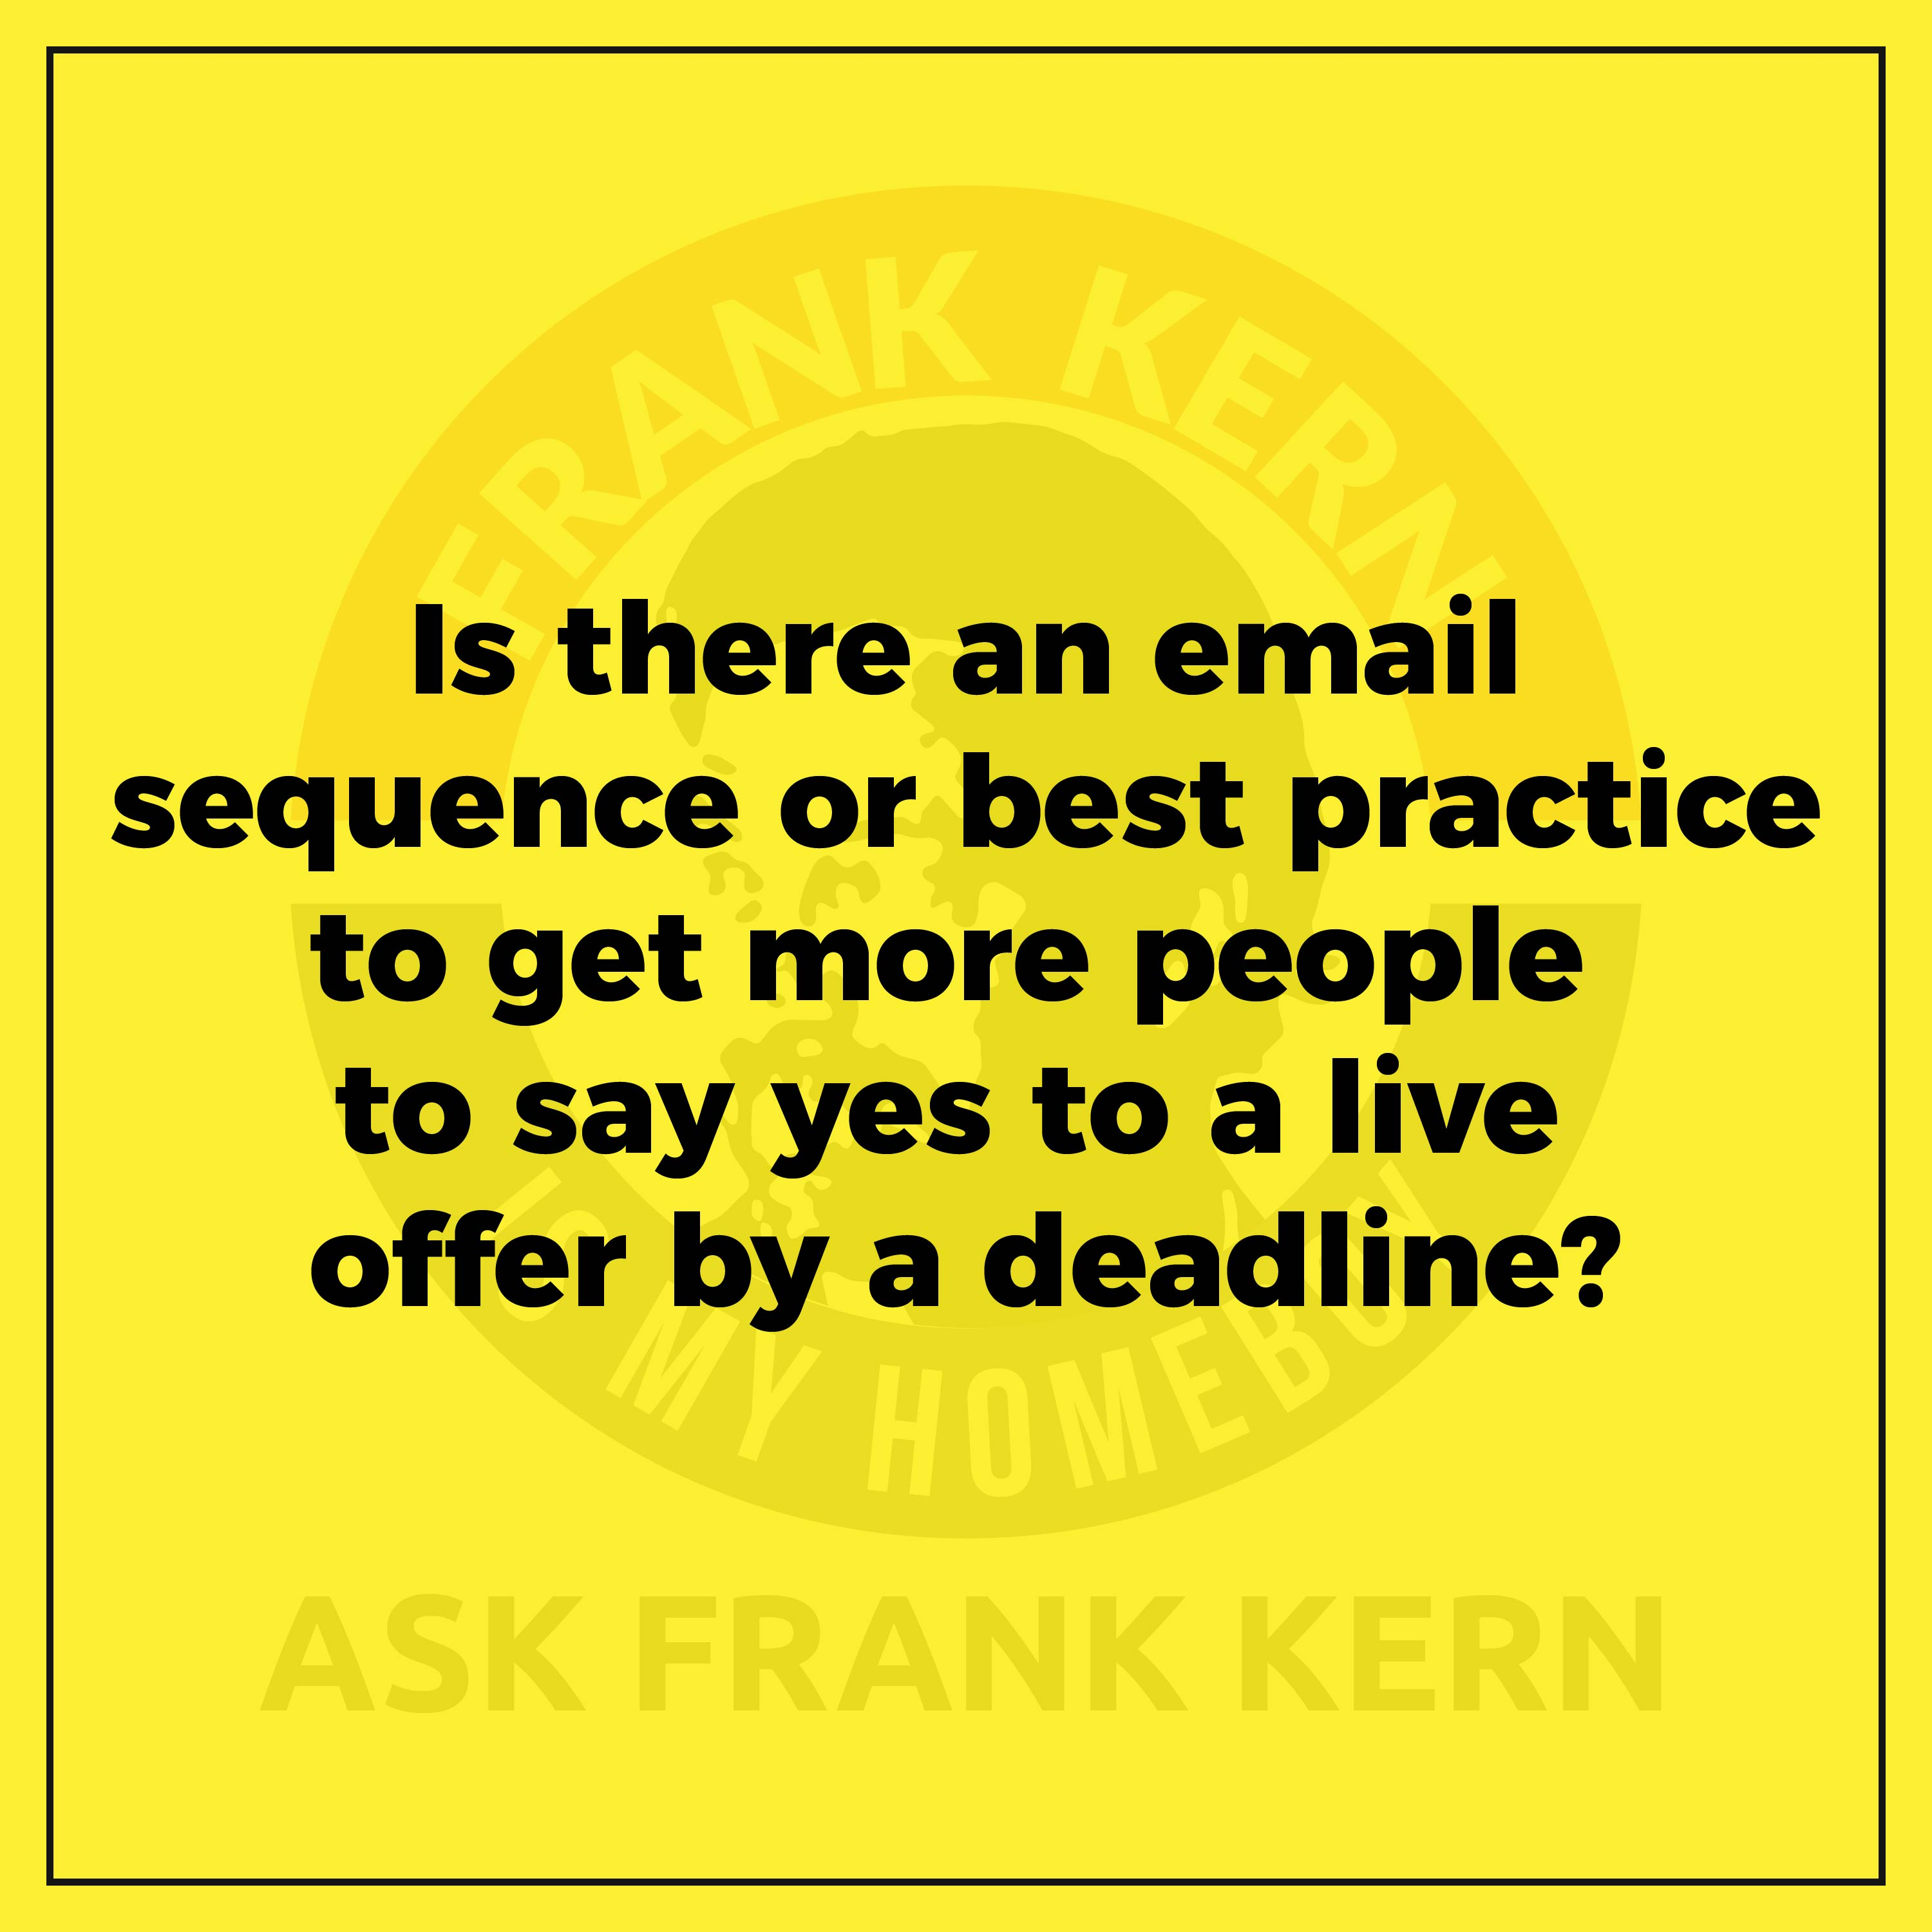 Is there an email sequence or best practice to get more people to say yes to a live offer by a deadline?